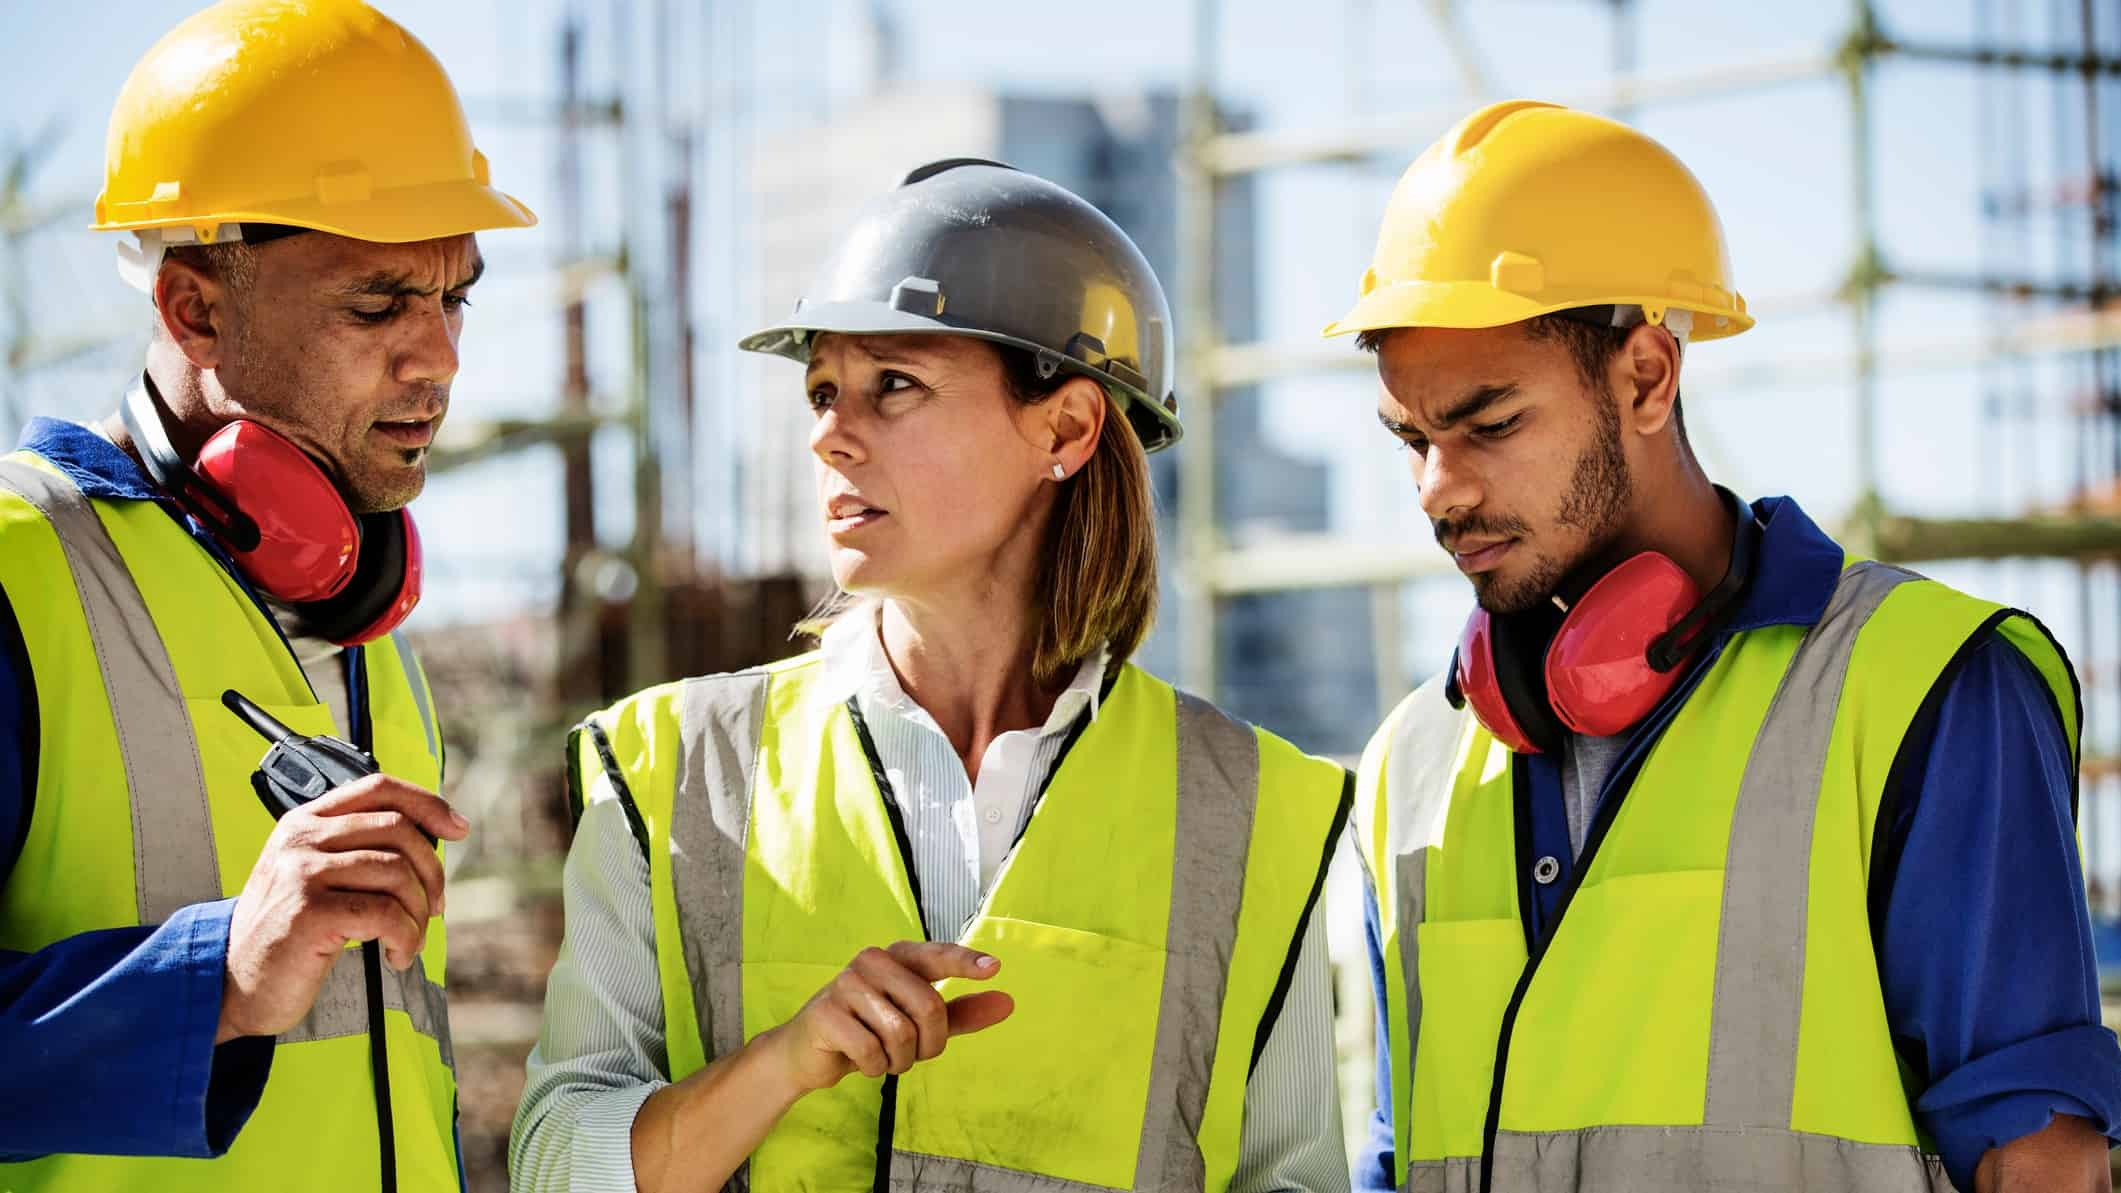 Two men and a woman in high vis gear on a Construction site